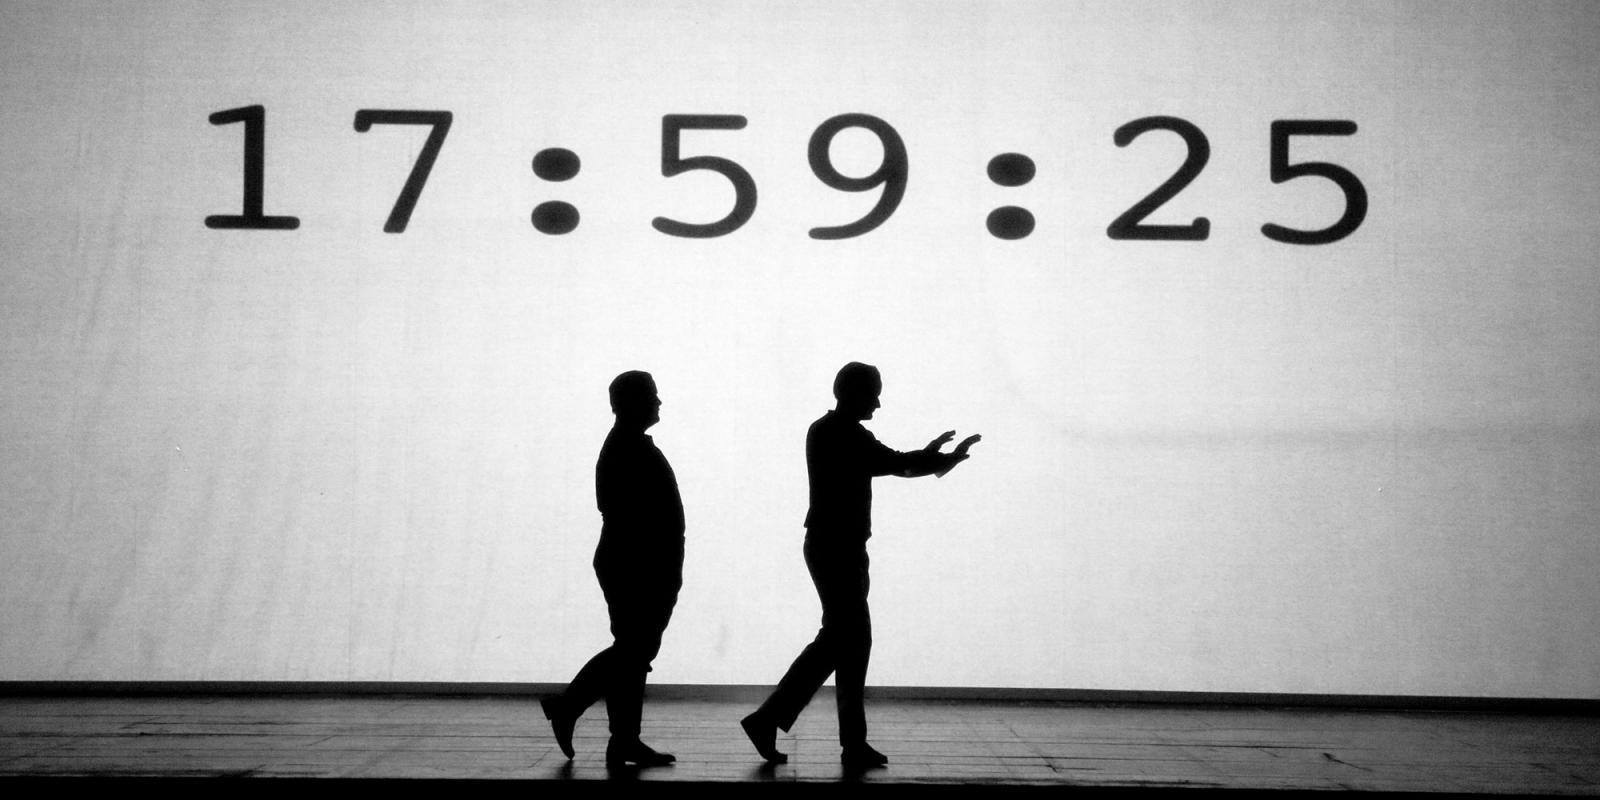 Orphée and Heurtebise walk silhouetted against a white background, with a bold timecode projected onto it.